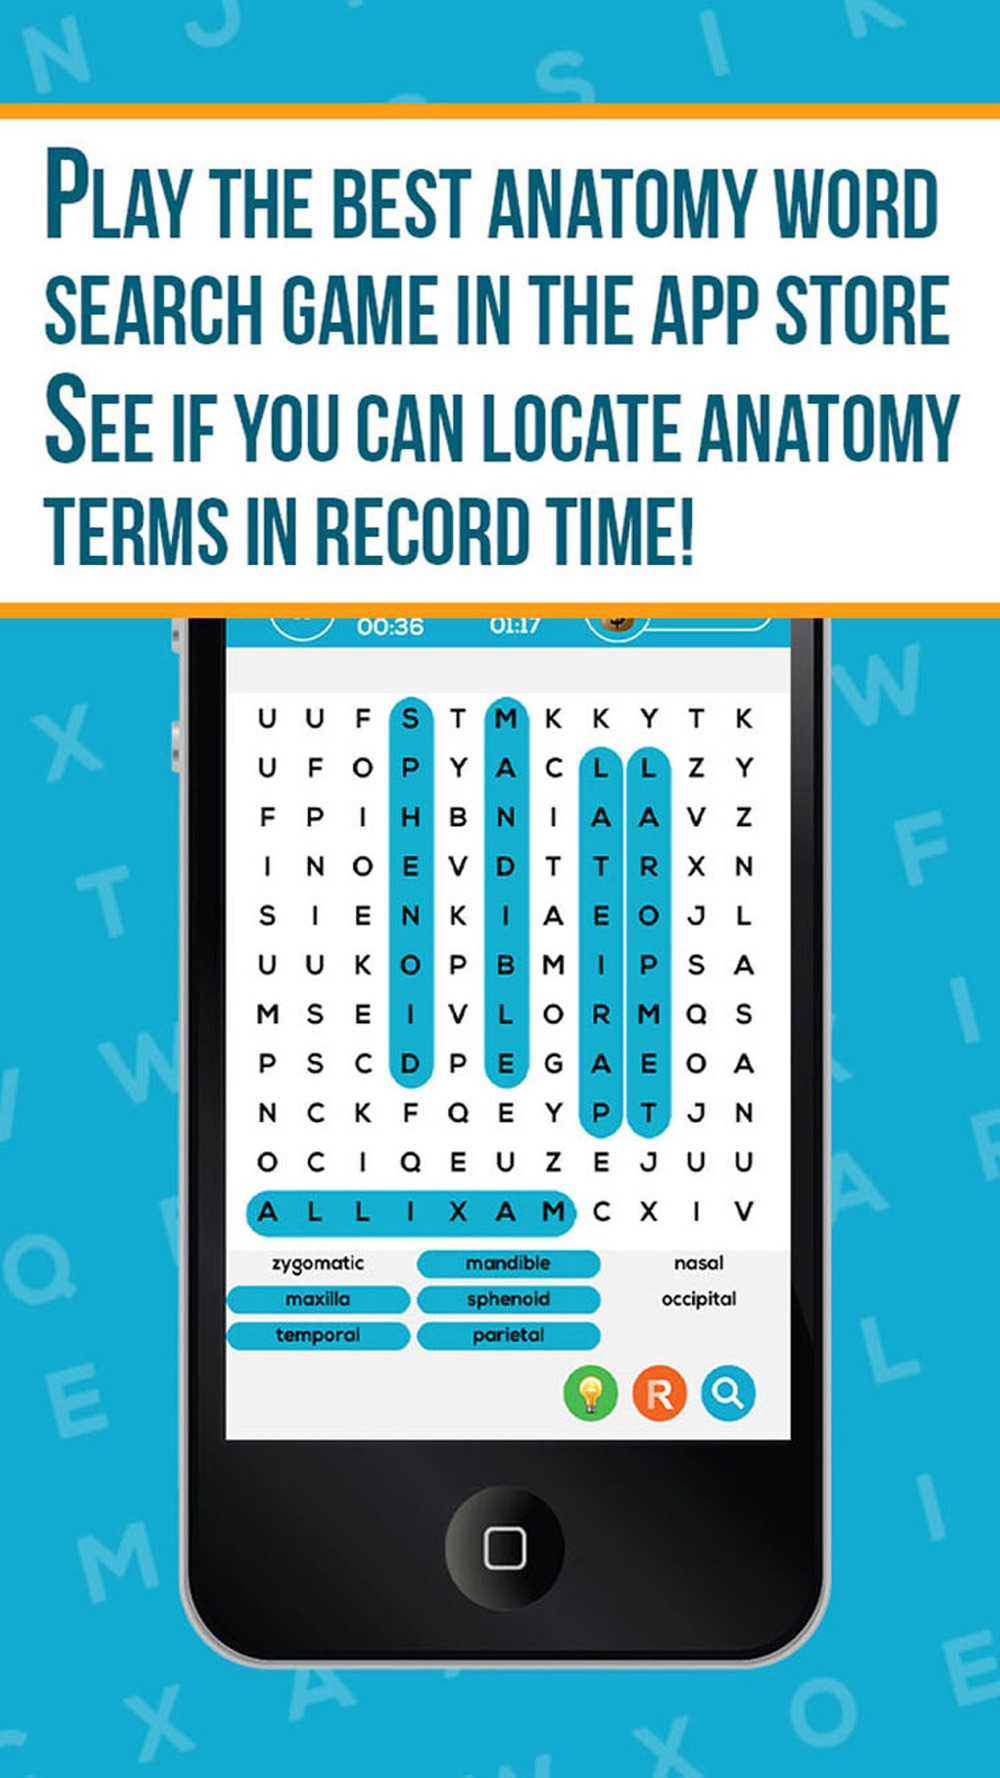 Anatomy Word Search- Medical Terms Game Cheat Codes